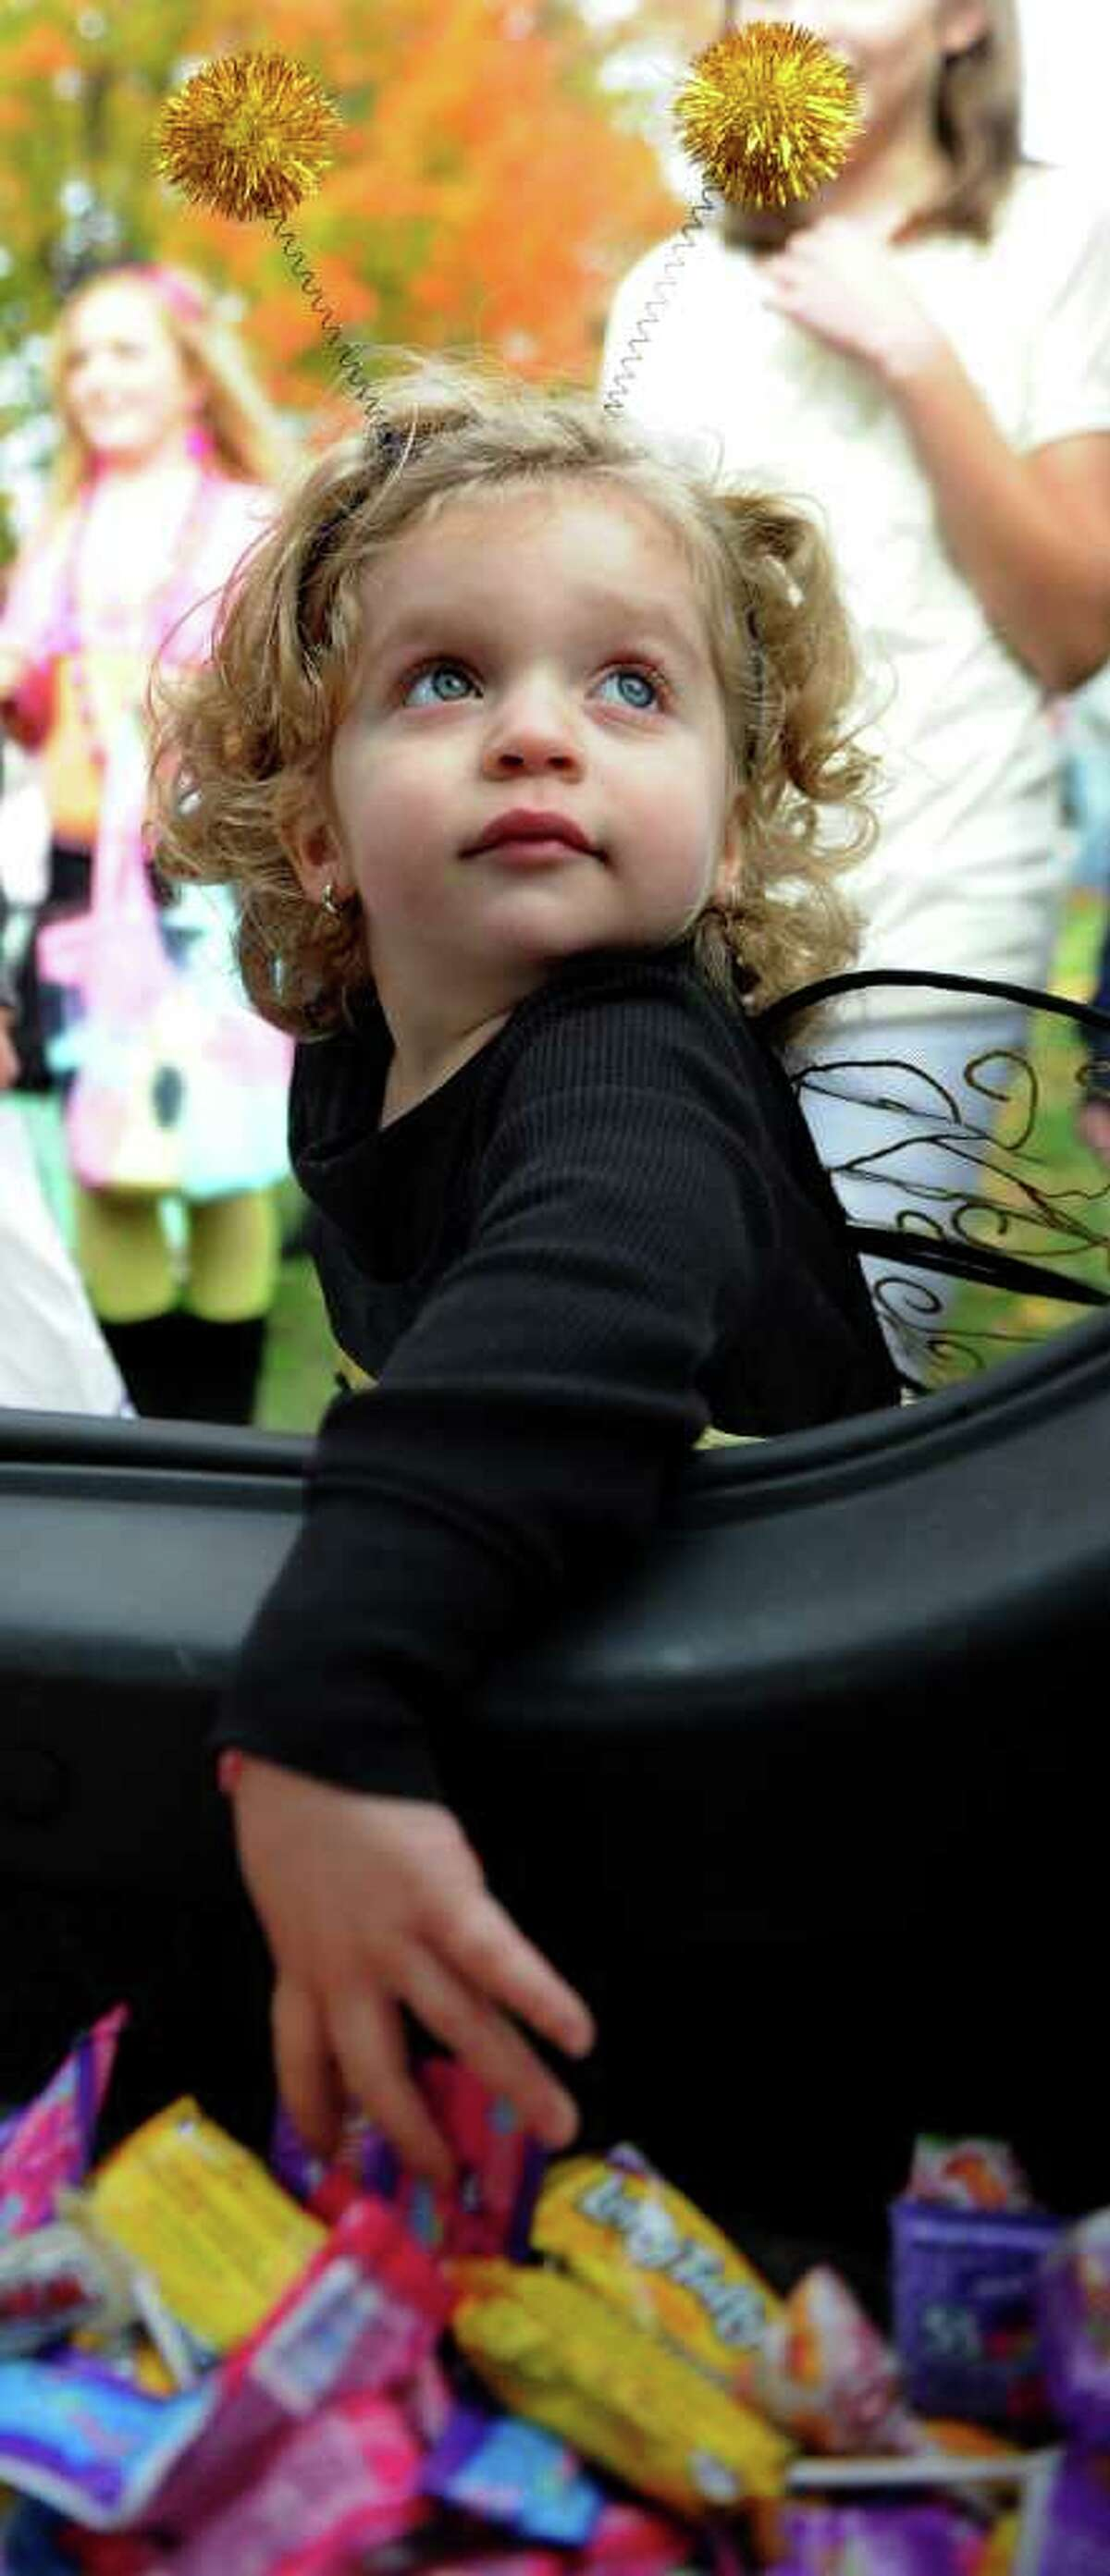 Bella Boccuzzi, 2, gets candy during the Trick or Treat on Safety Street event in Fairfield on Friday, October 29, 2010.